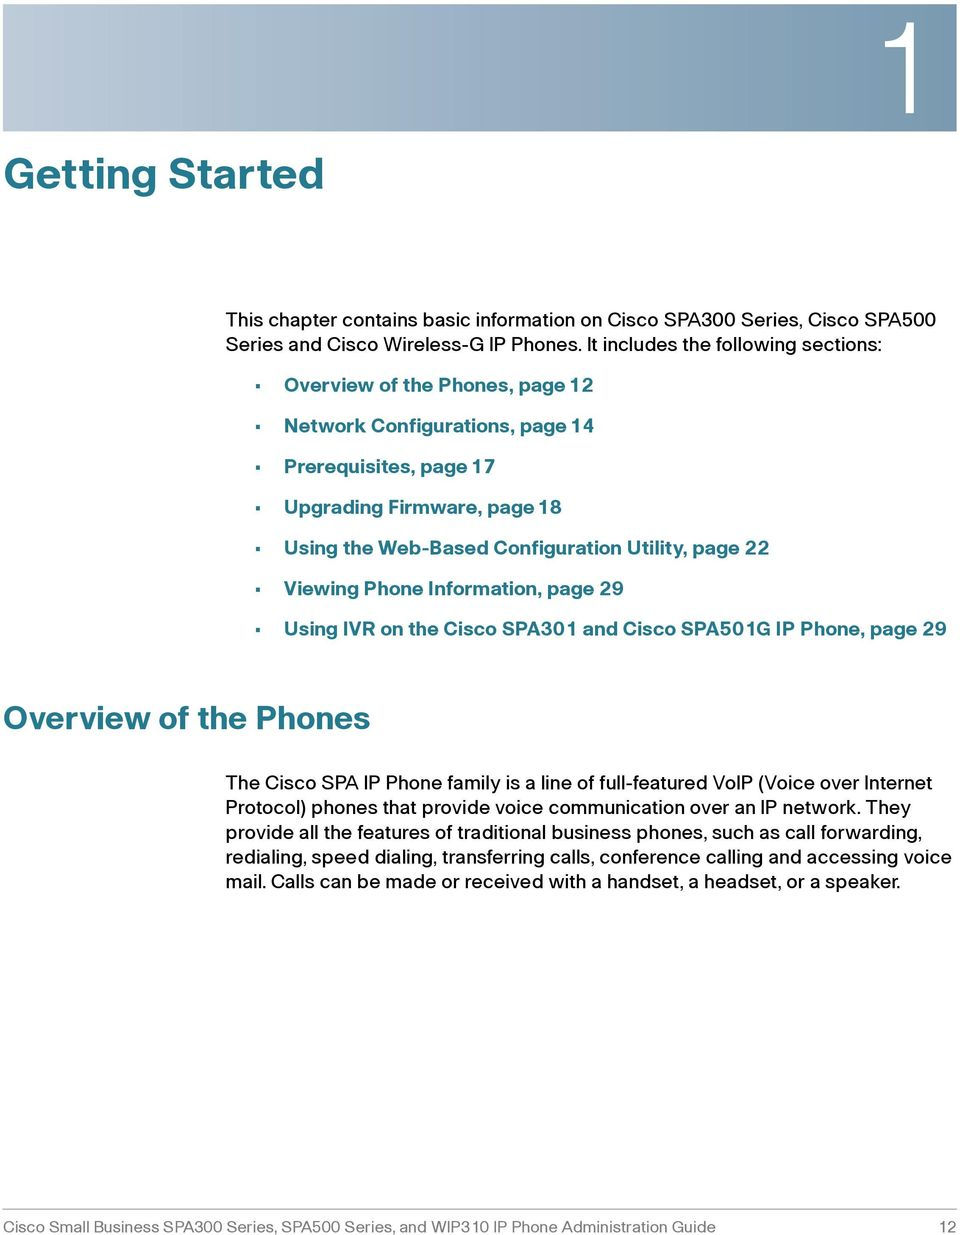 22 Viewing Phone Information, page 29 Using IVR on the Cisco SPA301 and Cisco SPA501G IP Phone, page 29 Overview of the Phones The Cisco SPA IP Phone family is a line of full-featured VoIP (Voice